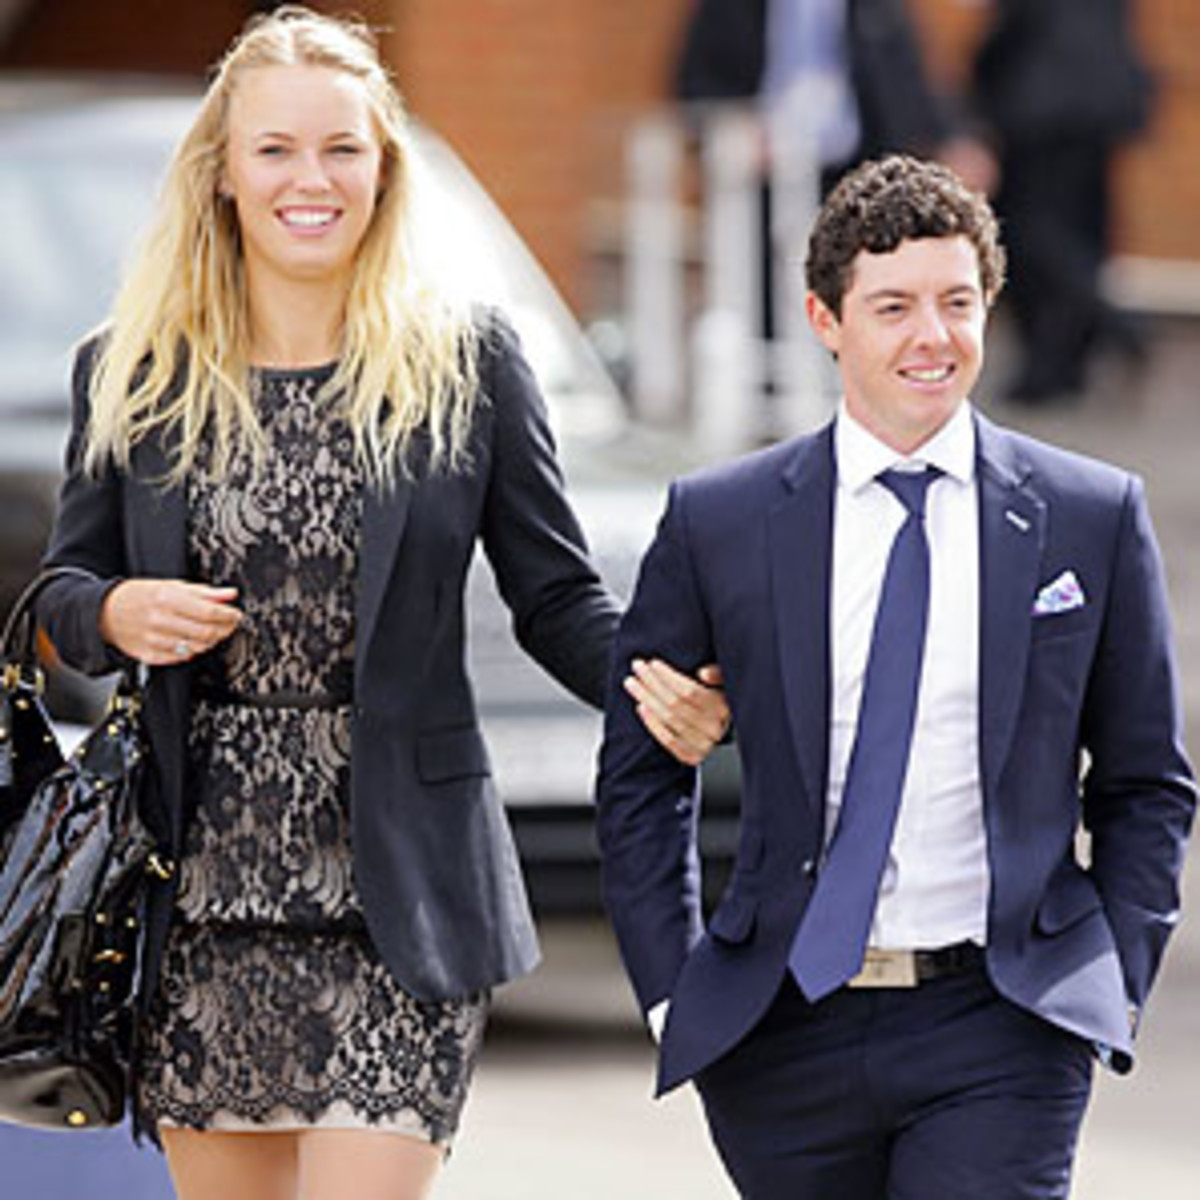 Caroline Wozniacki and Rory McIlroy are not ready to tie the knot -- yet. (Getty Images)